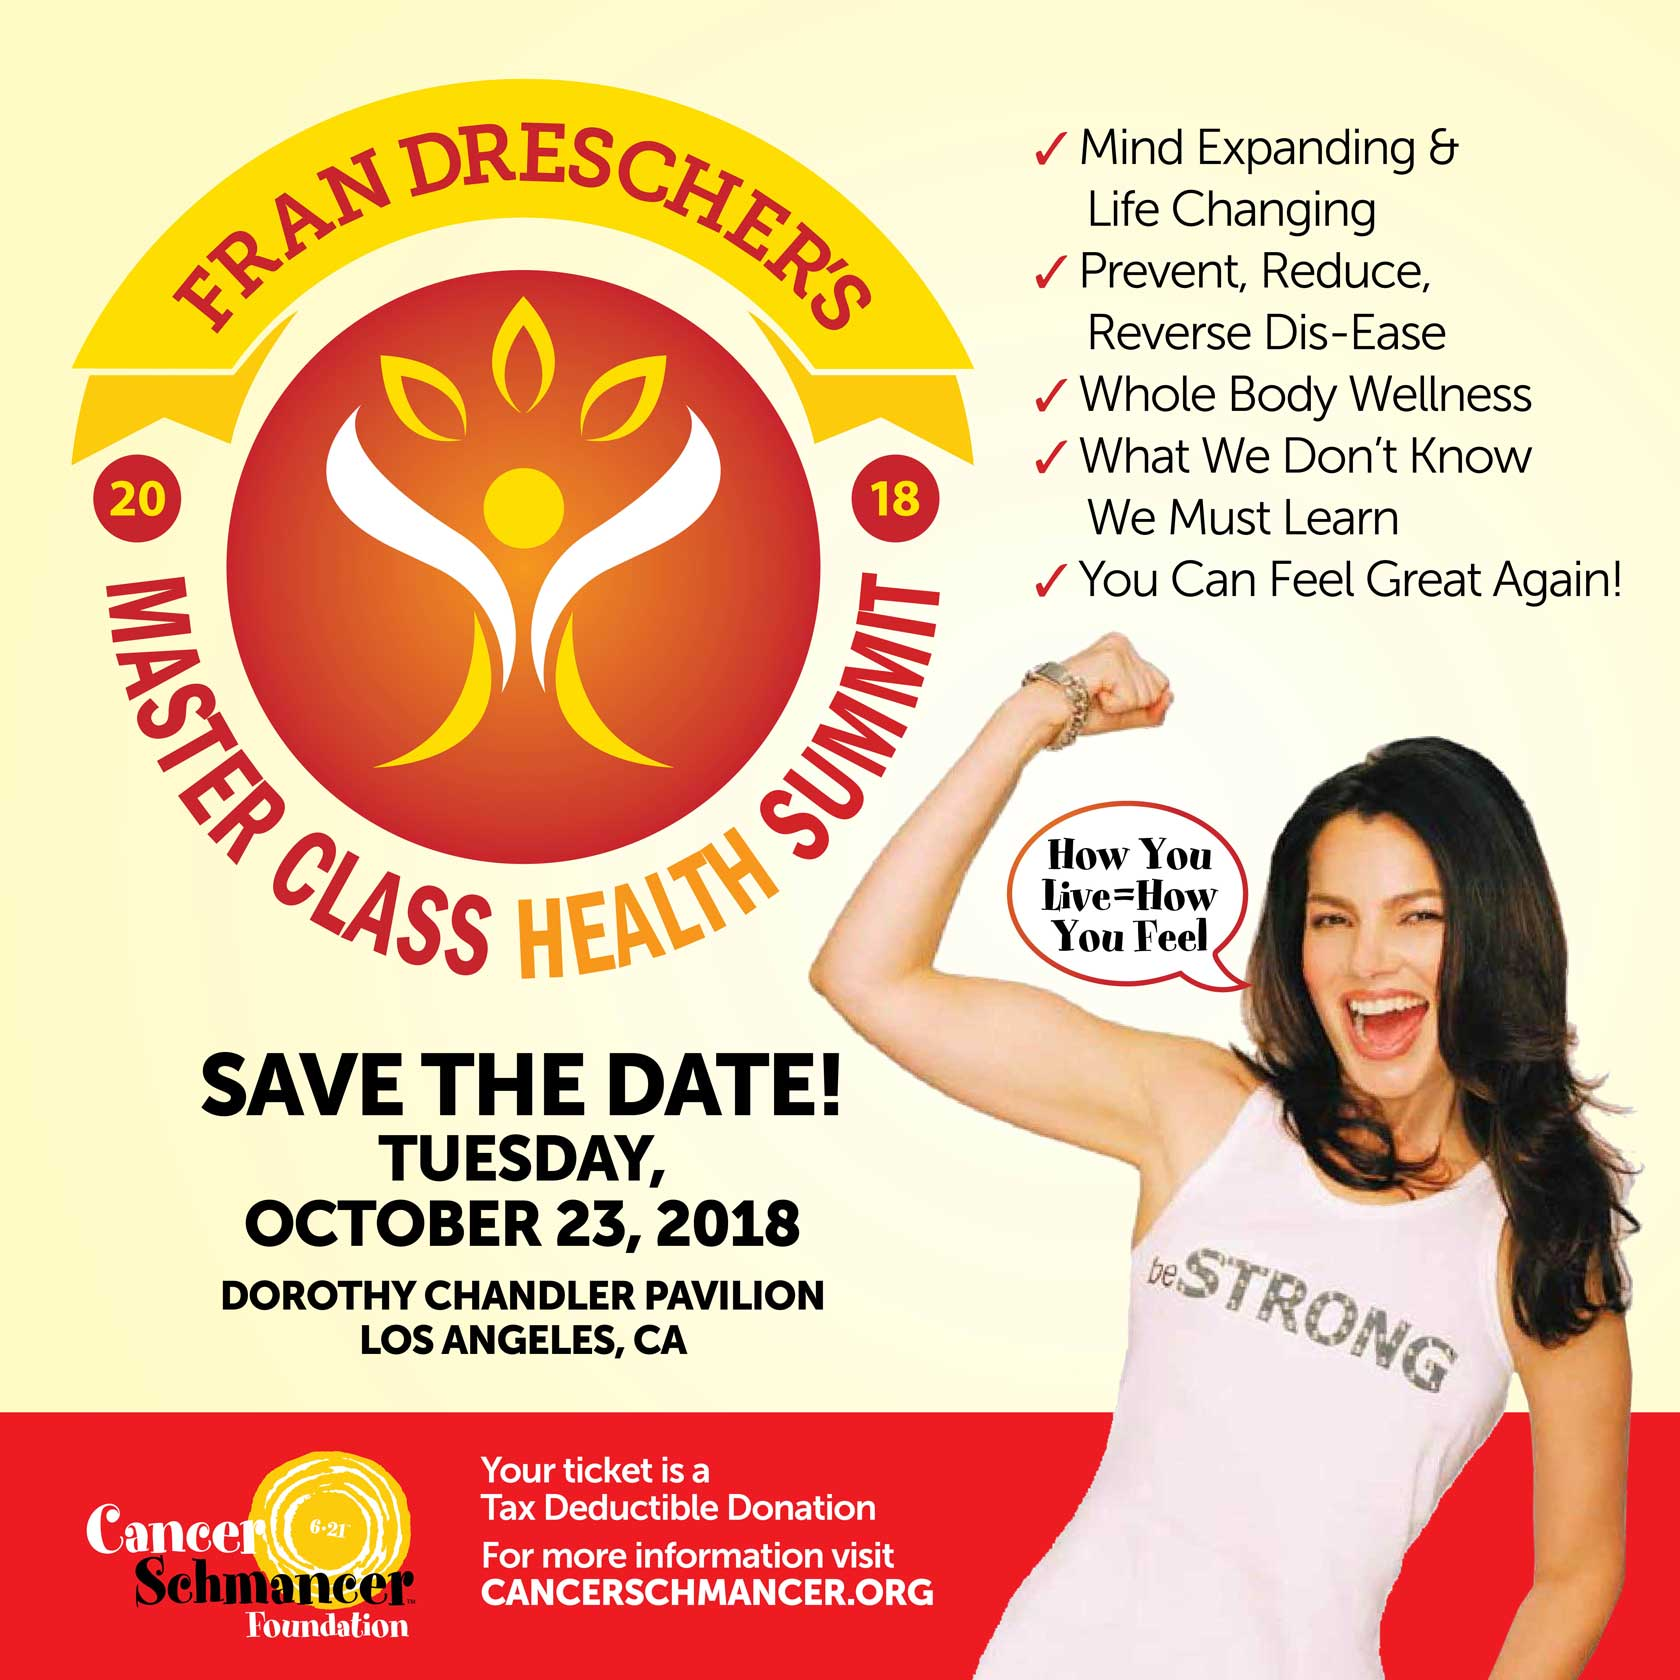 Fran Drescher's Health Summit 2018